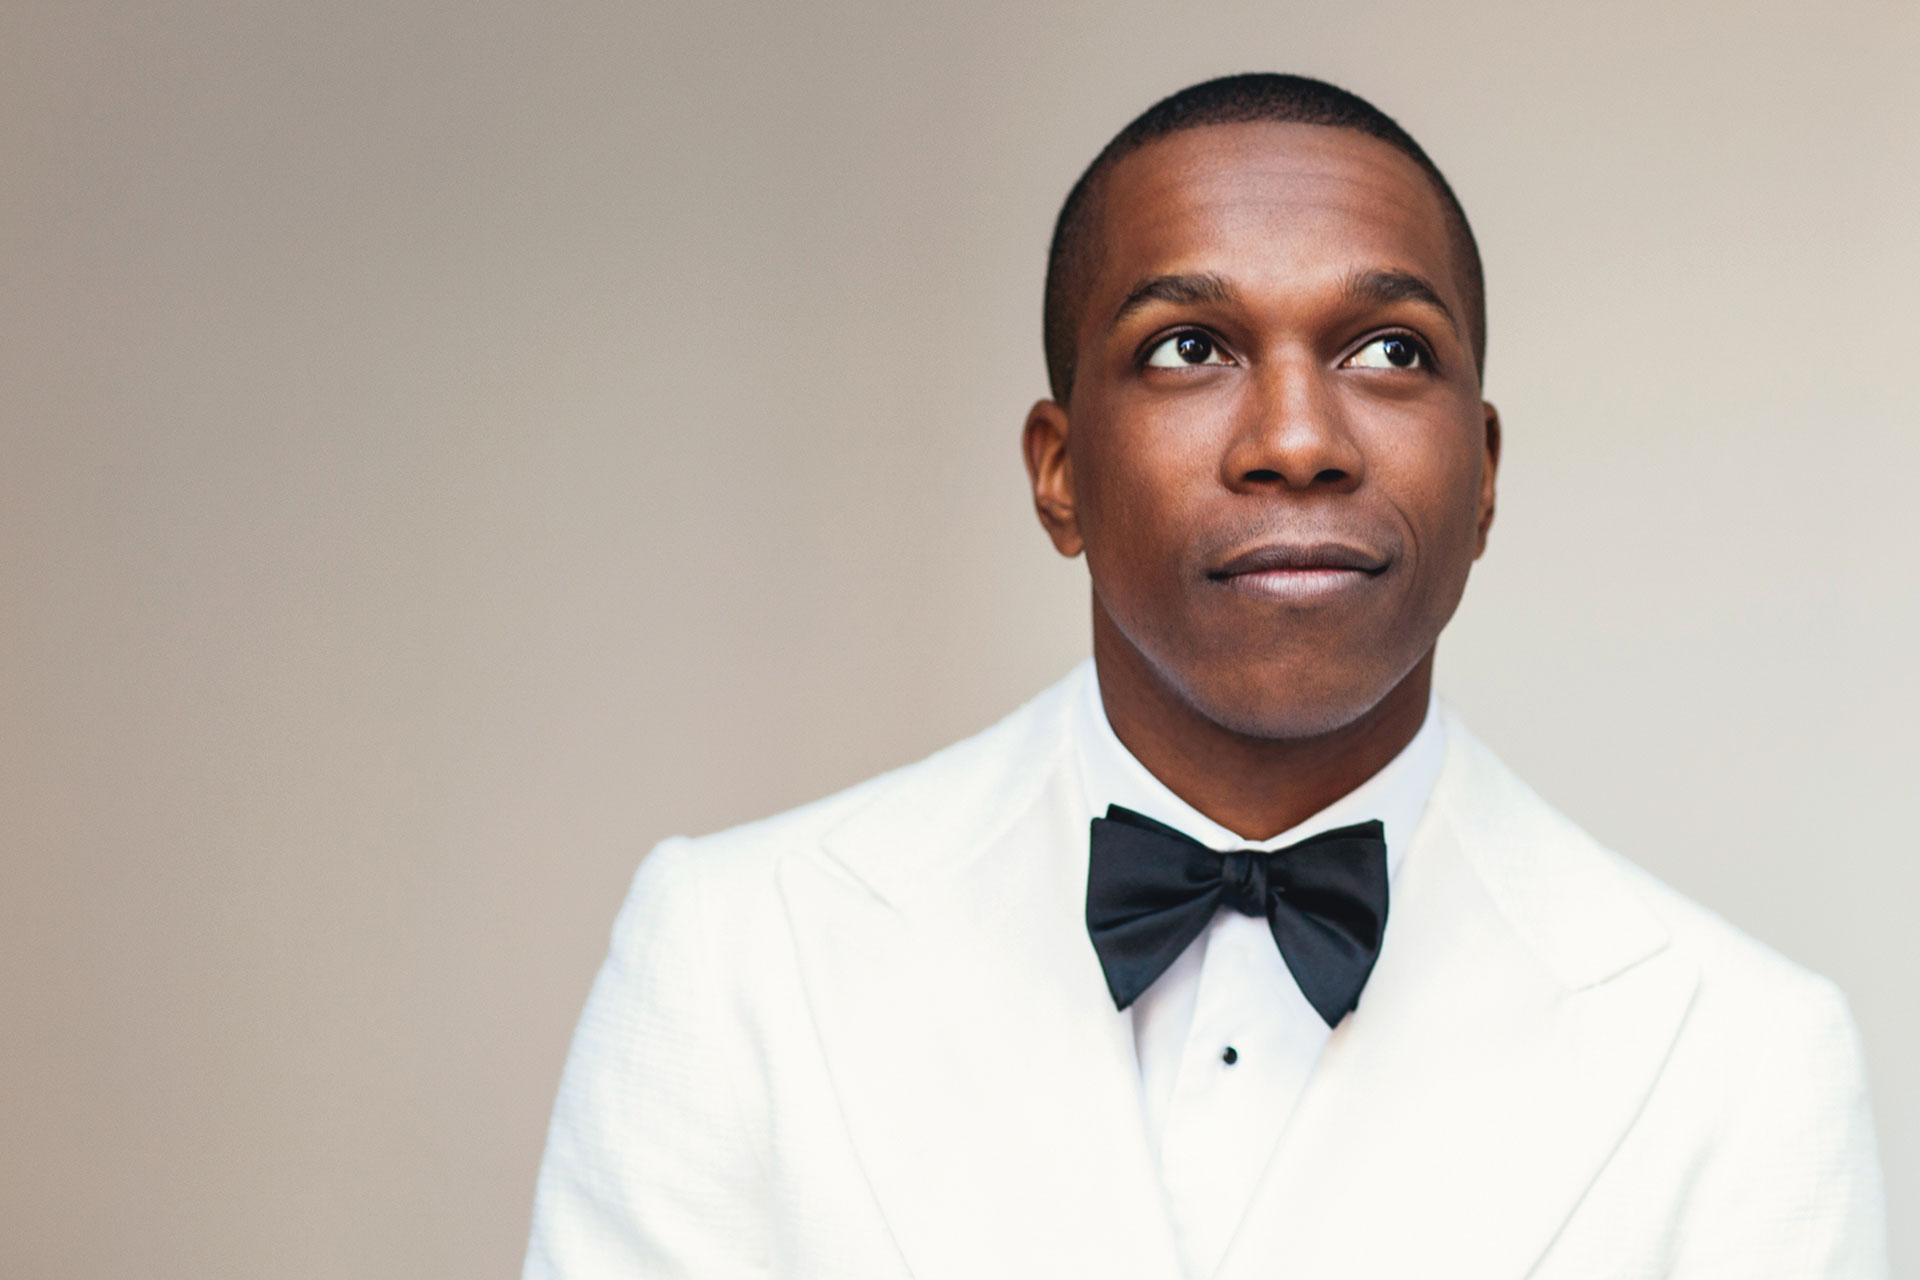 Leslie Odom Jr. Net Worth